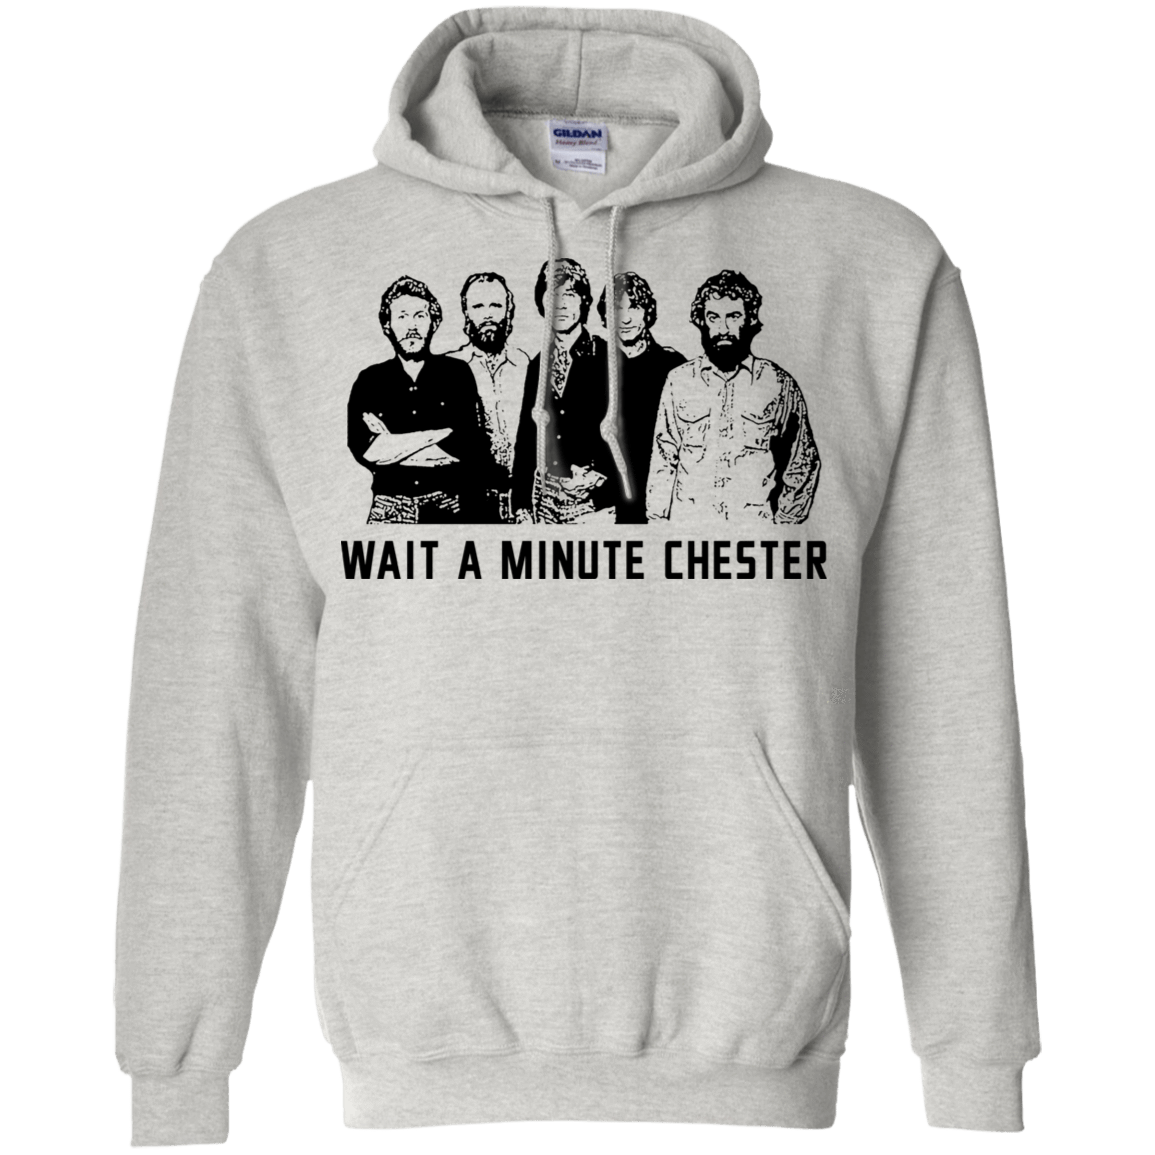 Wait A Minute Chester The Band Version 541-4748-73889089-23071 - Tee Ript